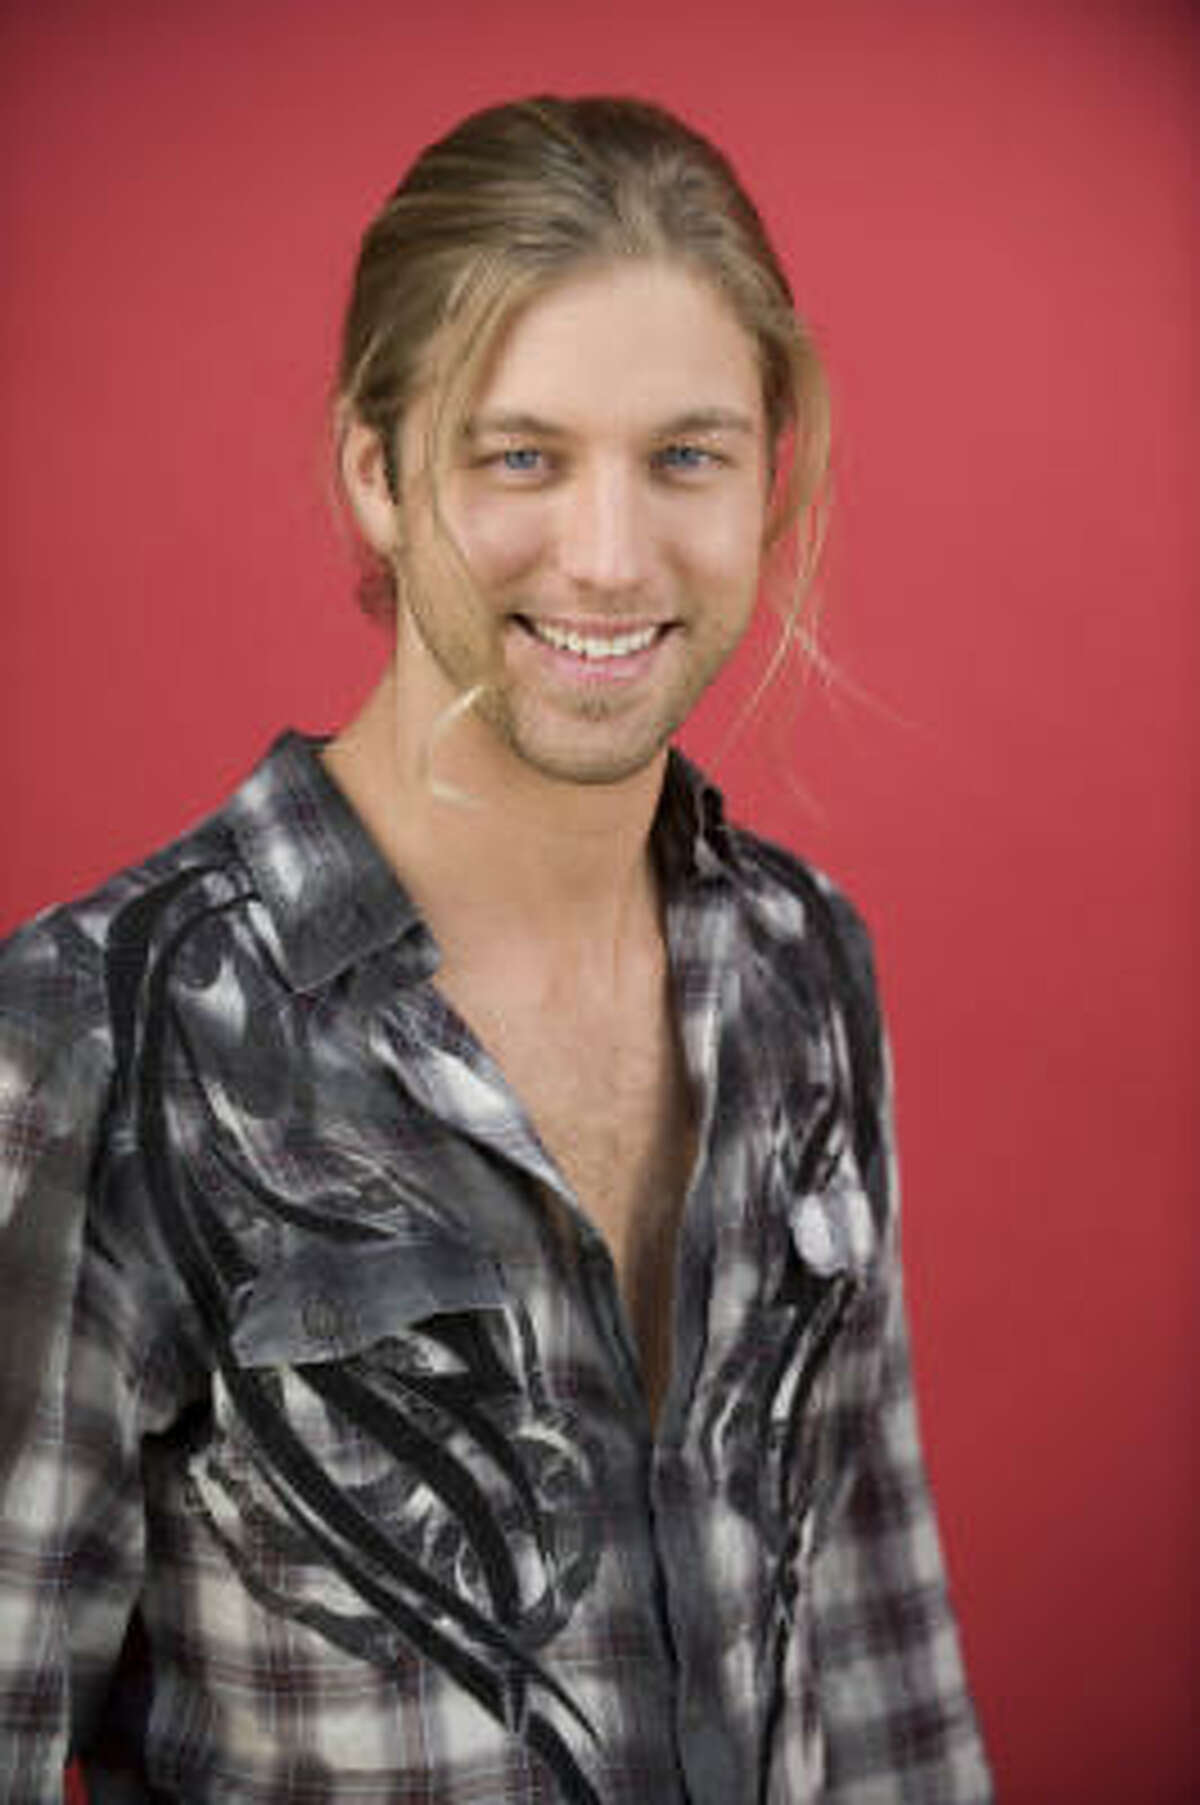 Casey James , Fort Worth. Age: 27Joey says: Now that Kara DioGuardi has simmered down, the Texas boy has settled into the show's requisite country slot. I can see him selling records.